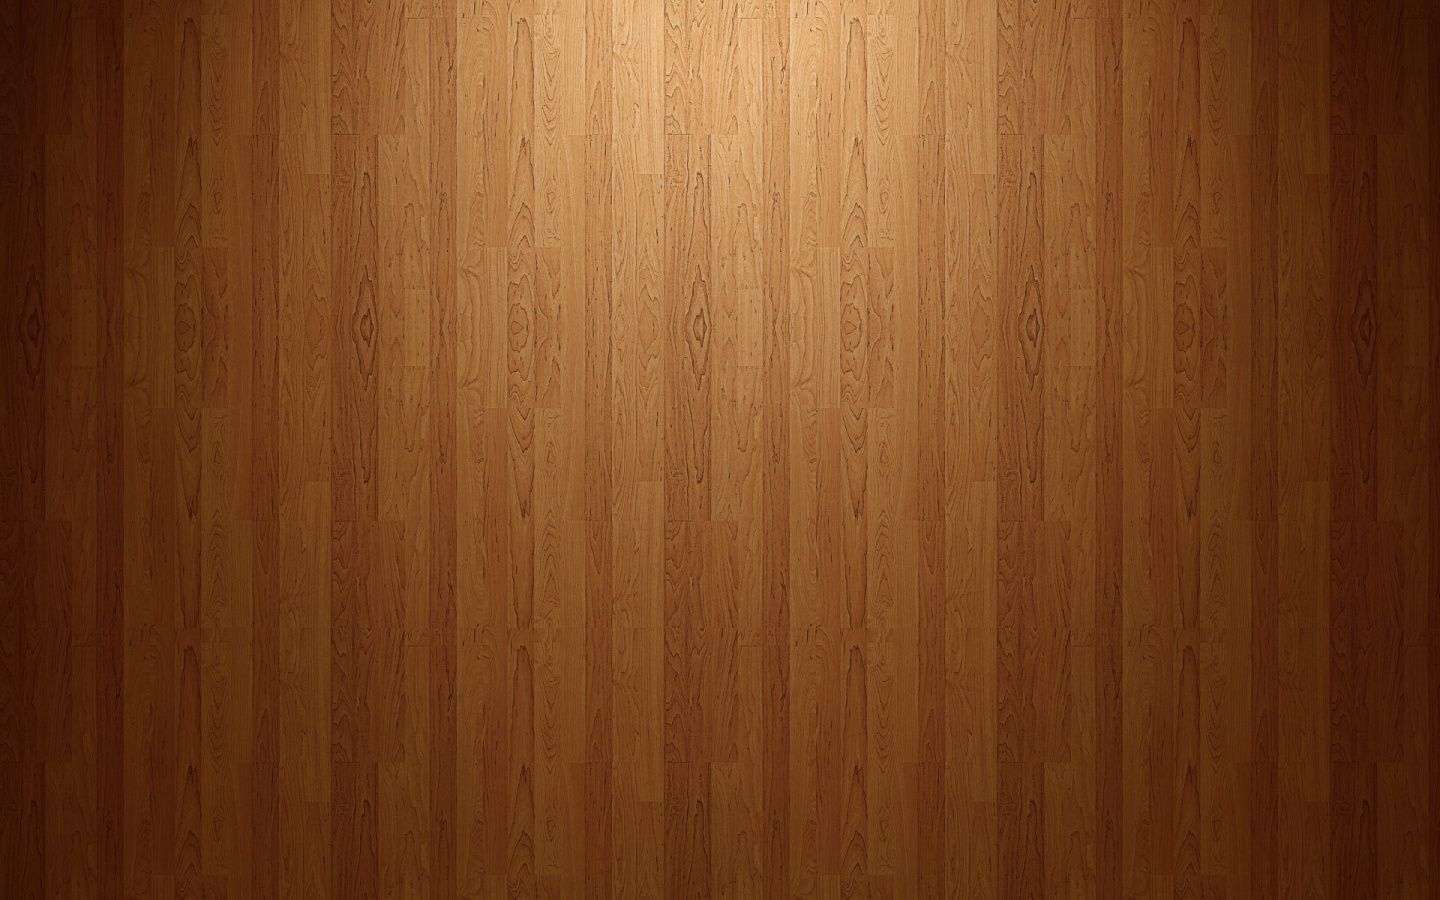 TechCredo-Wood-Texture-Collection-for-Android-%C3%97-wallpaper-wpc9009691